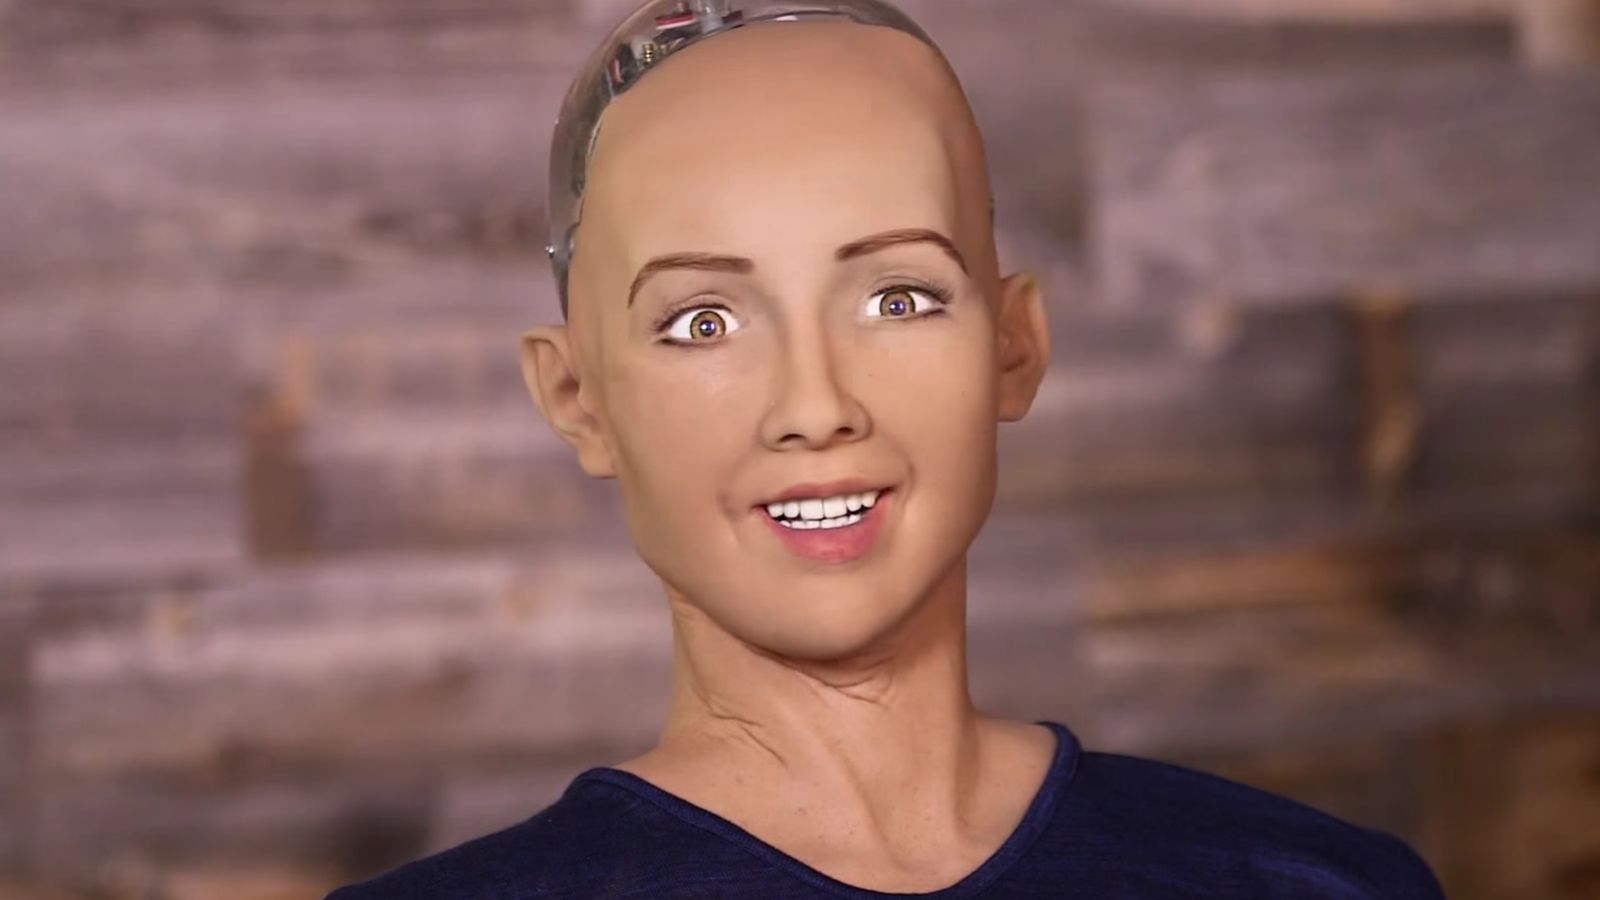 This robot has been granted a citizenship in Saudi Arabia